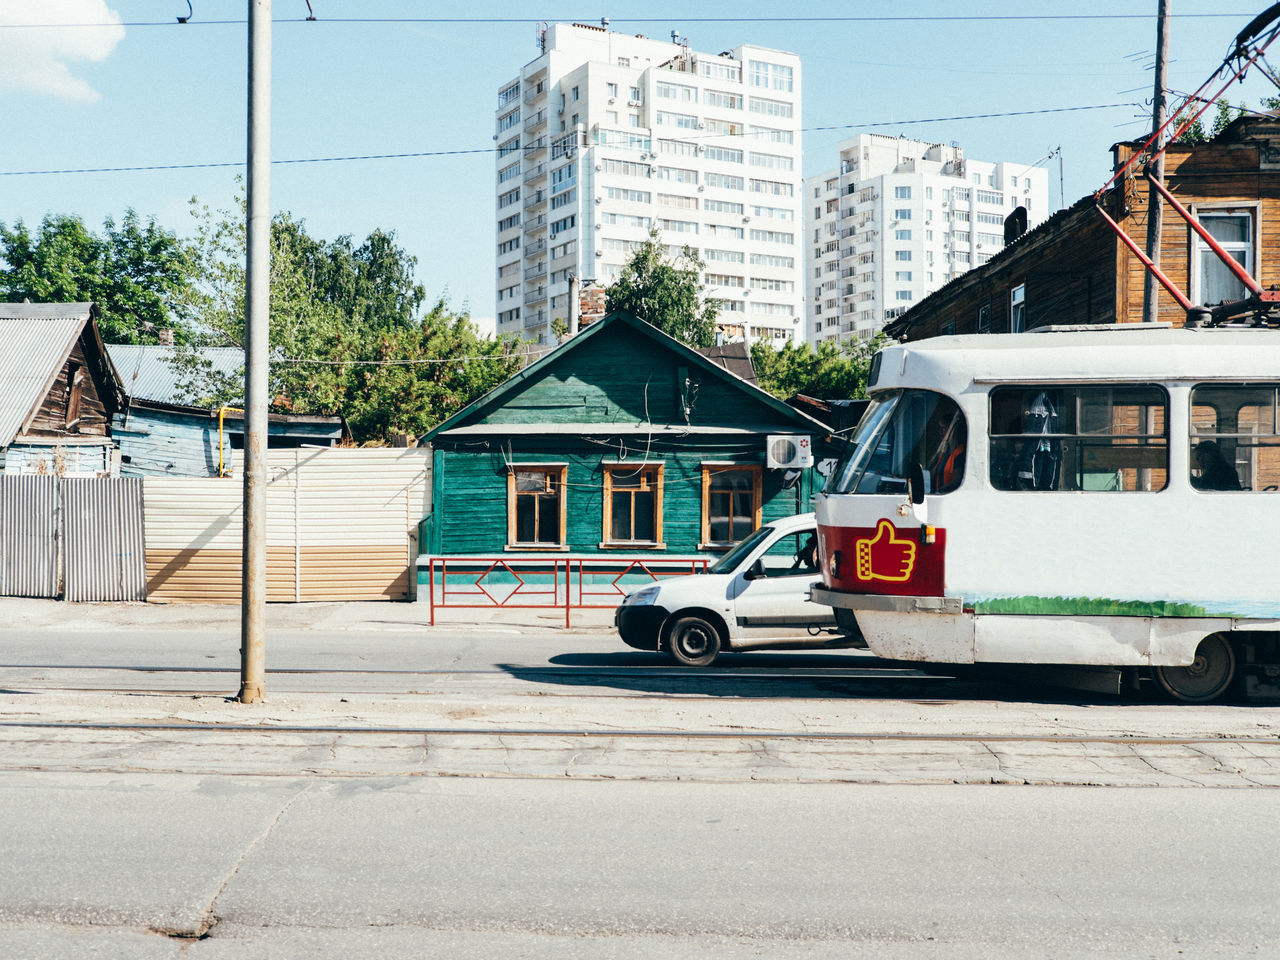 Architecture Building Exterior Built Structure City Day Land Vehicle Mode Of Transport No People Outdoors Residential Building Road Russia Samara Sky Transportation Tree